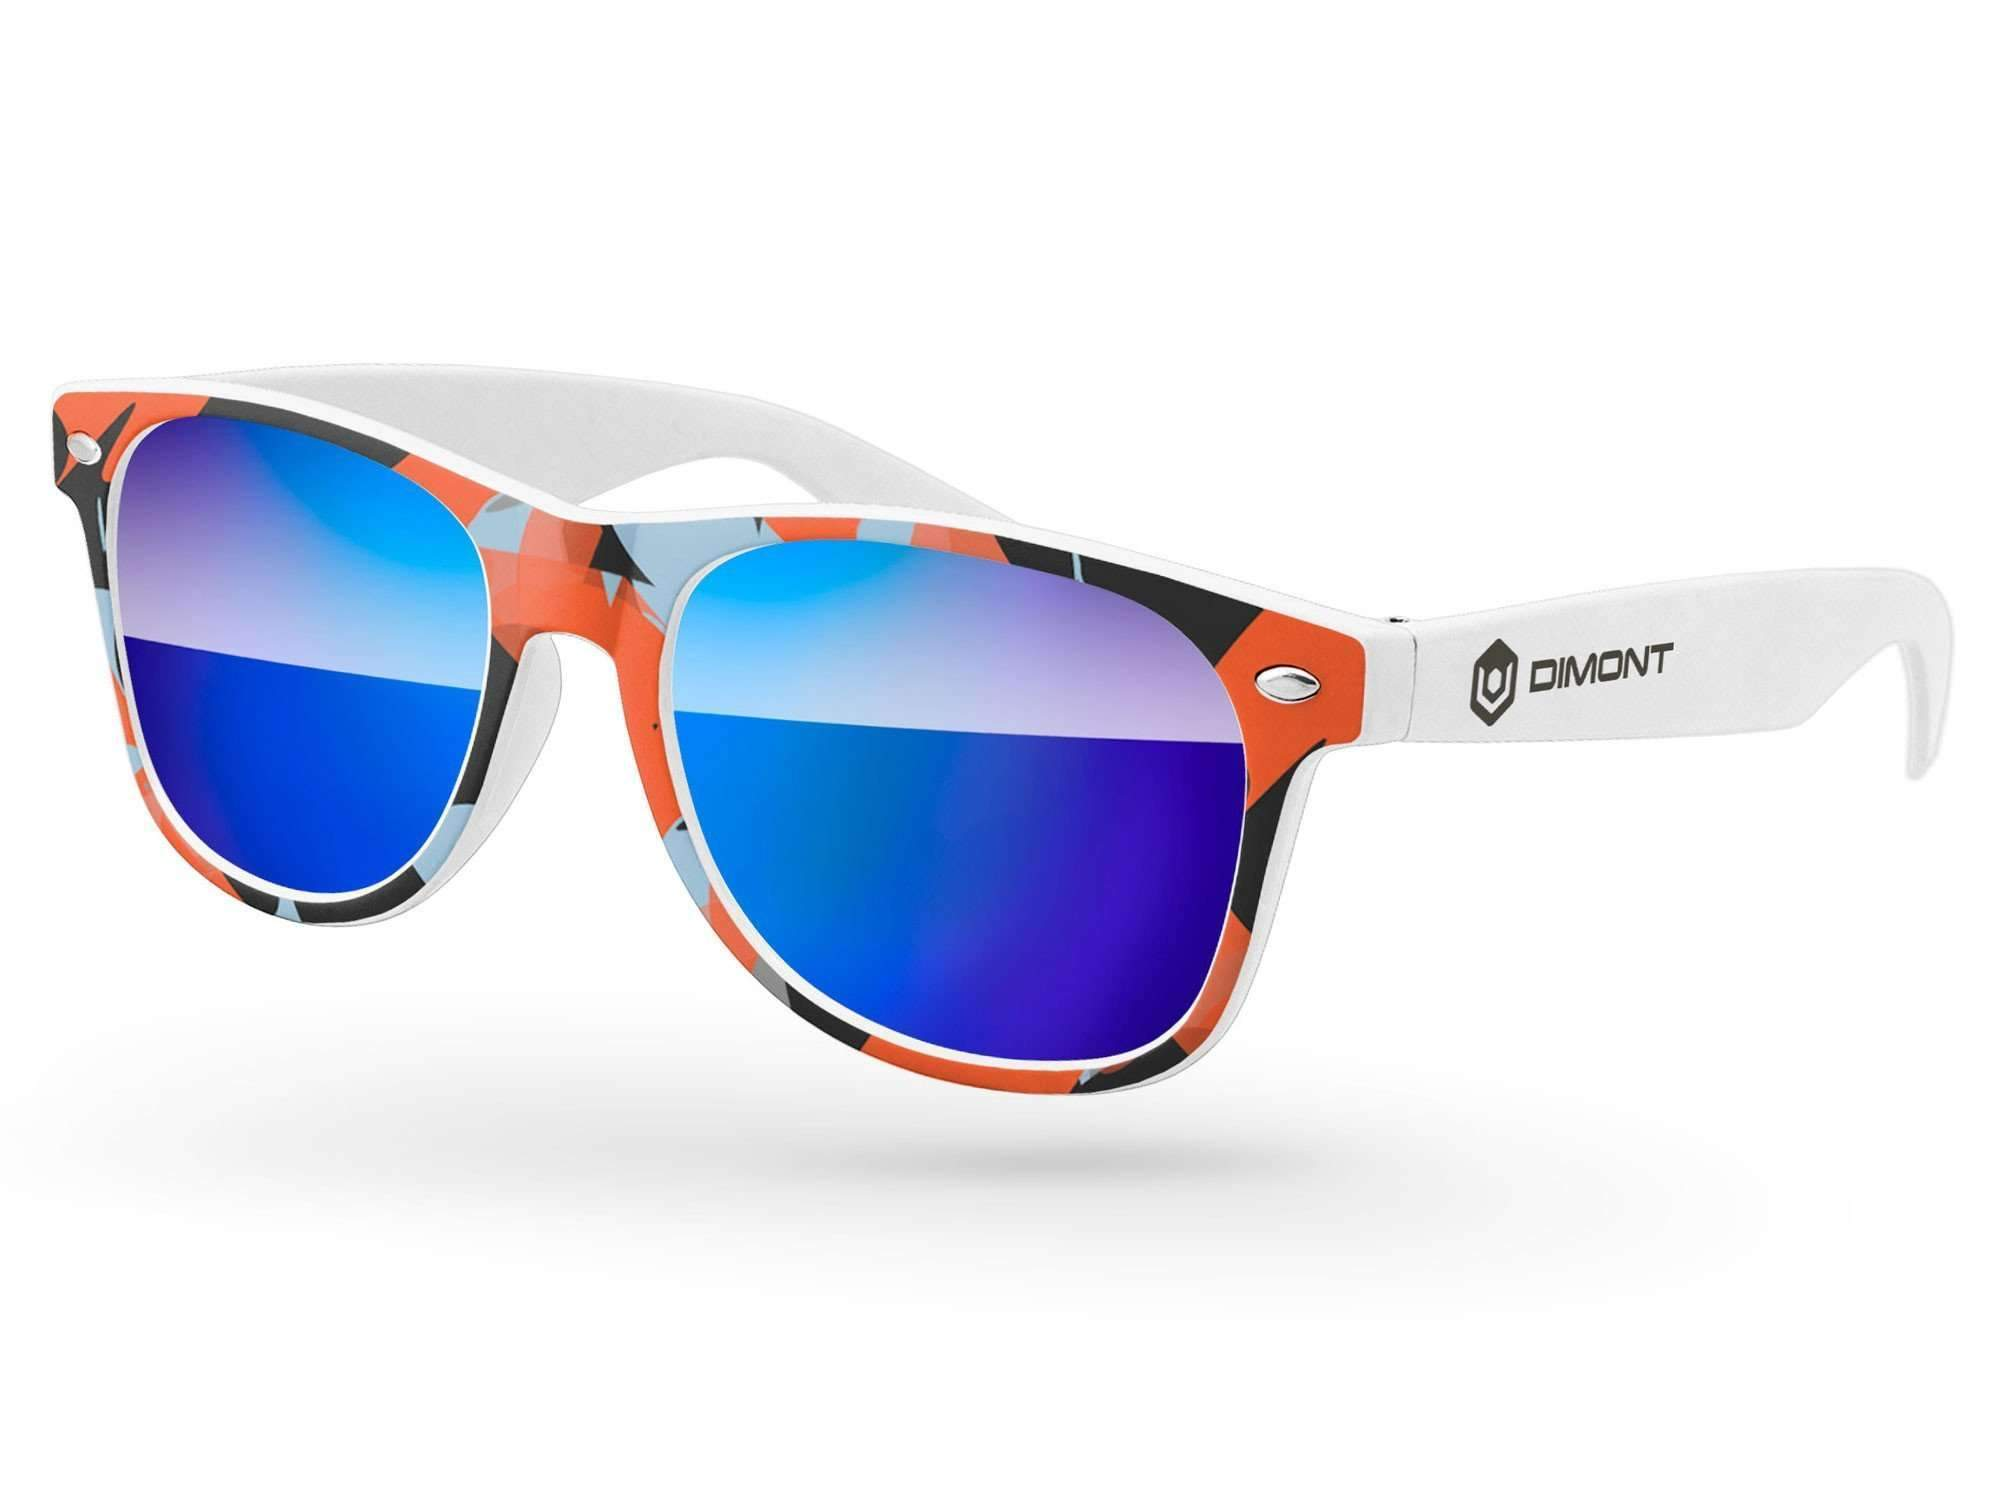 RM040 - Retro Mirror Promotional Sunglasses w/ full-color front-frame heat transfer & 1-color temple imprint